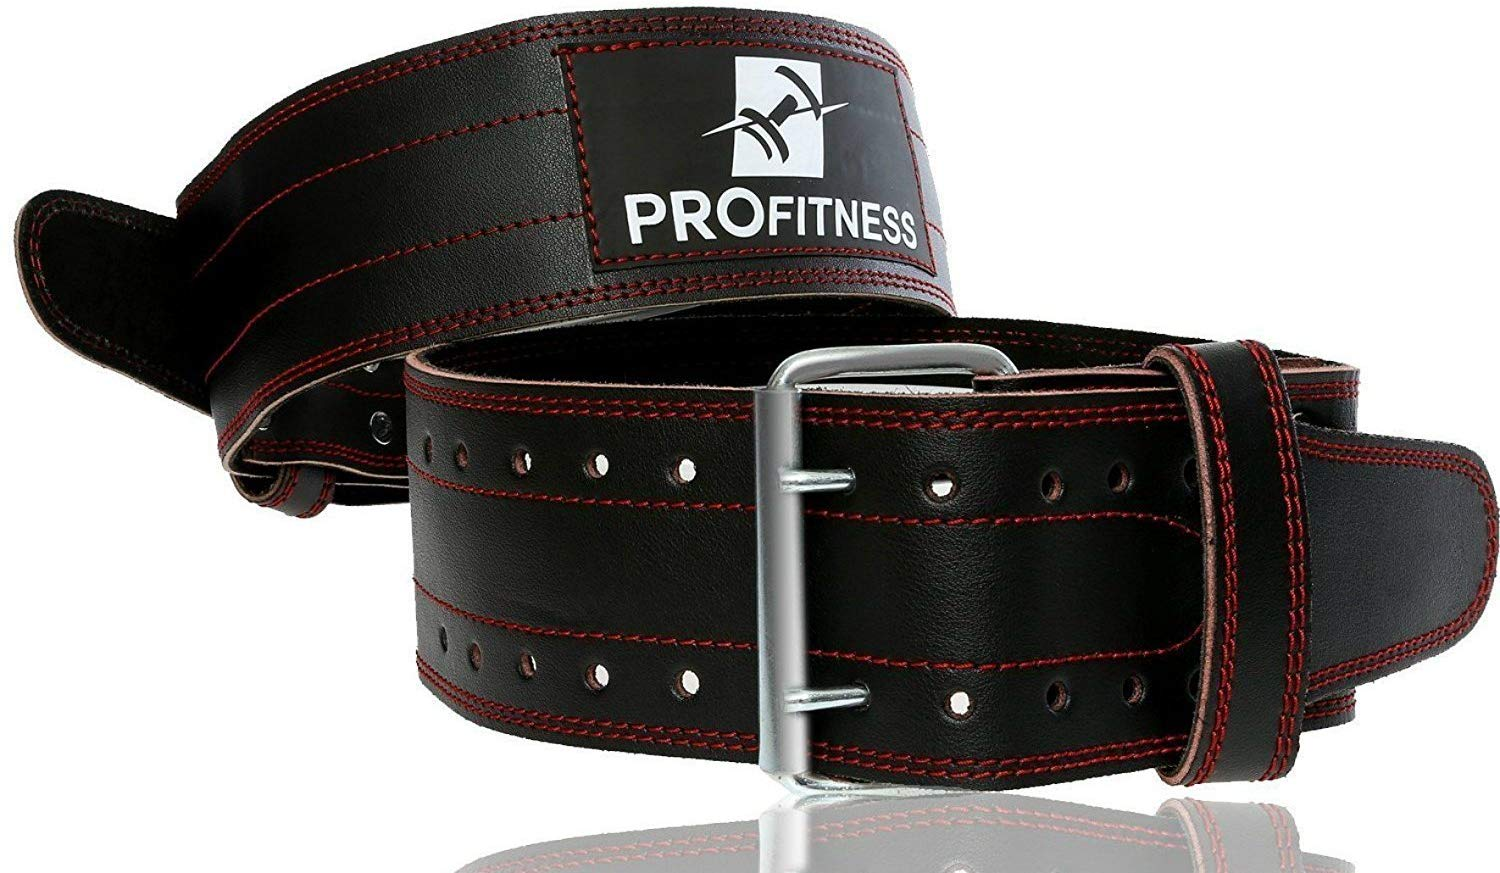 ProFitness 4 Inches Genuine Leather Workout Belt